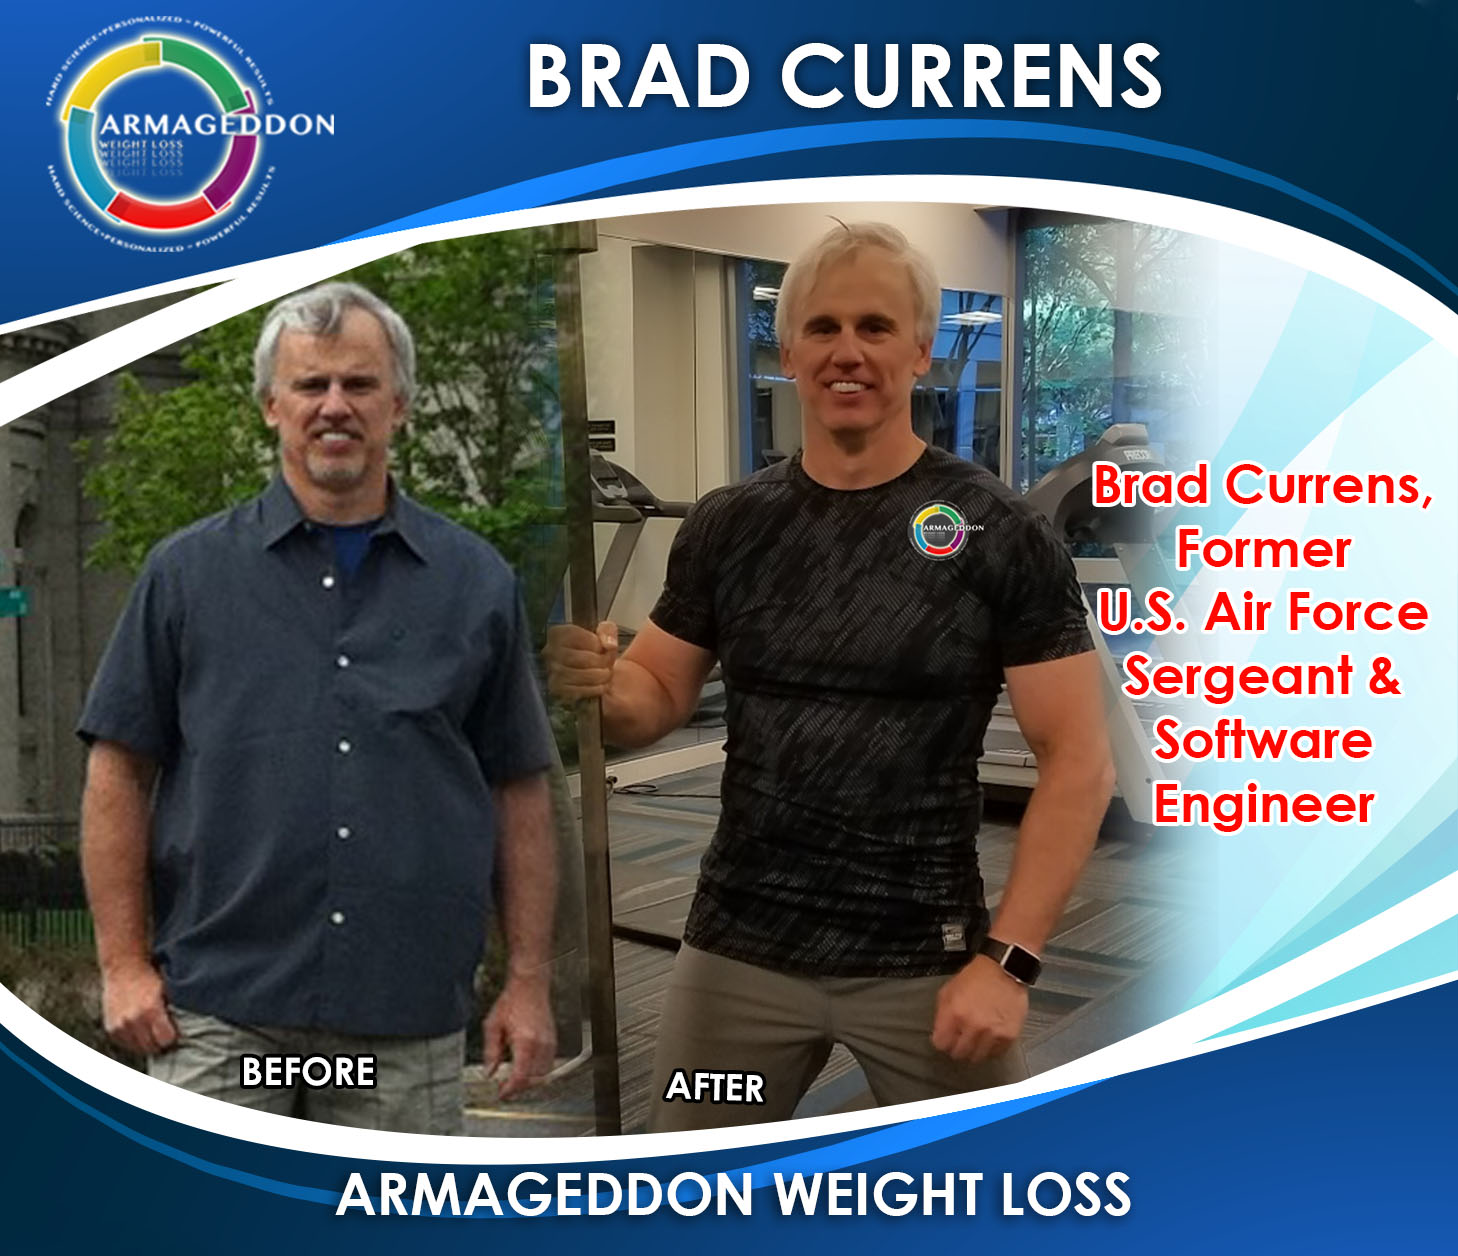 Brad Currens - Armageddon Weight Loss - Best Weight Loss Program for men over 50, Best exercise DVD for men over 50, Bruce Wayne - docscience, best exercise DVD for women -2